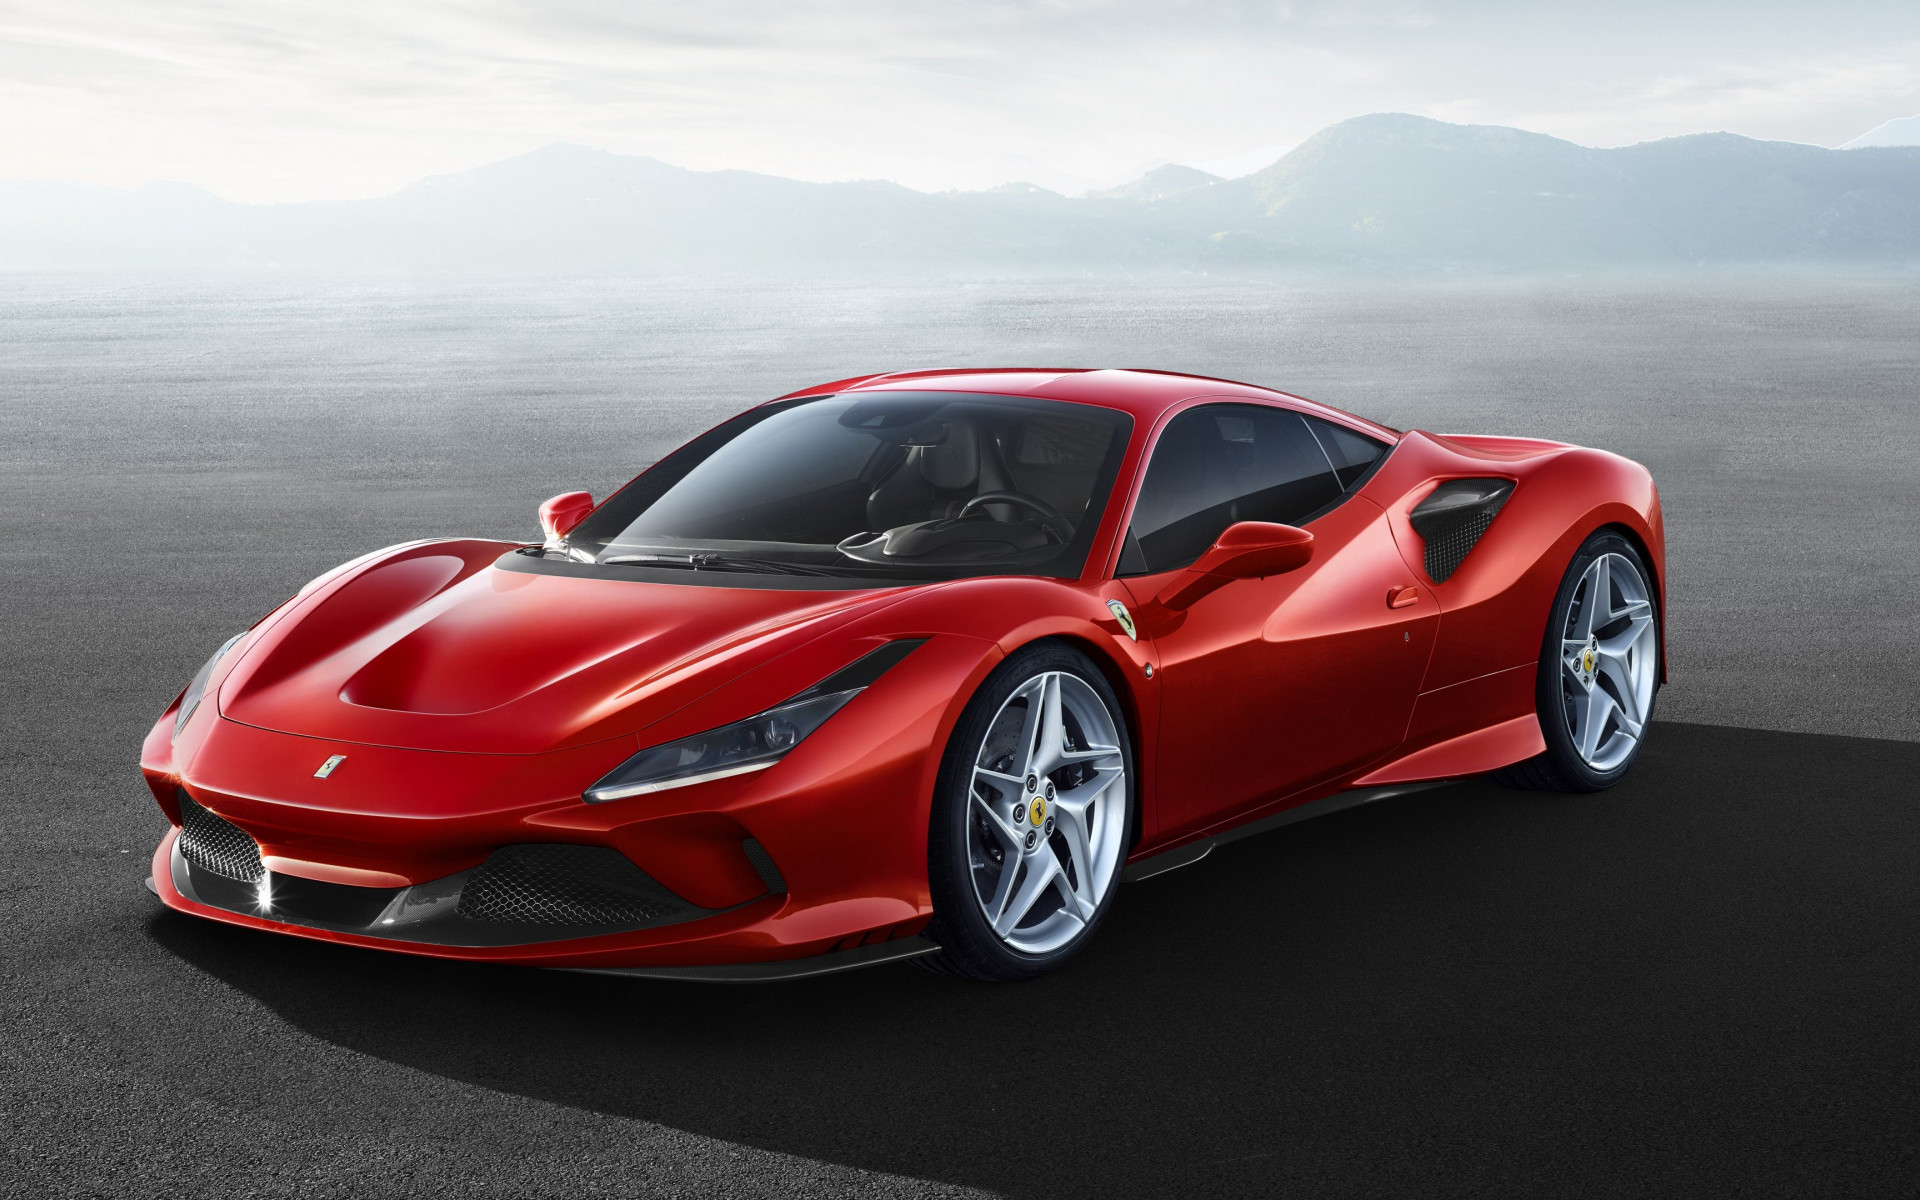 Ferrari F8 Tributo wallpaper 1920x1200